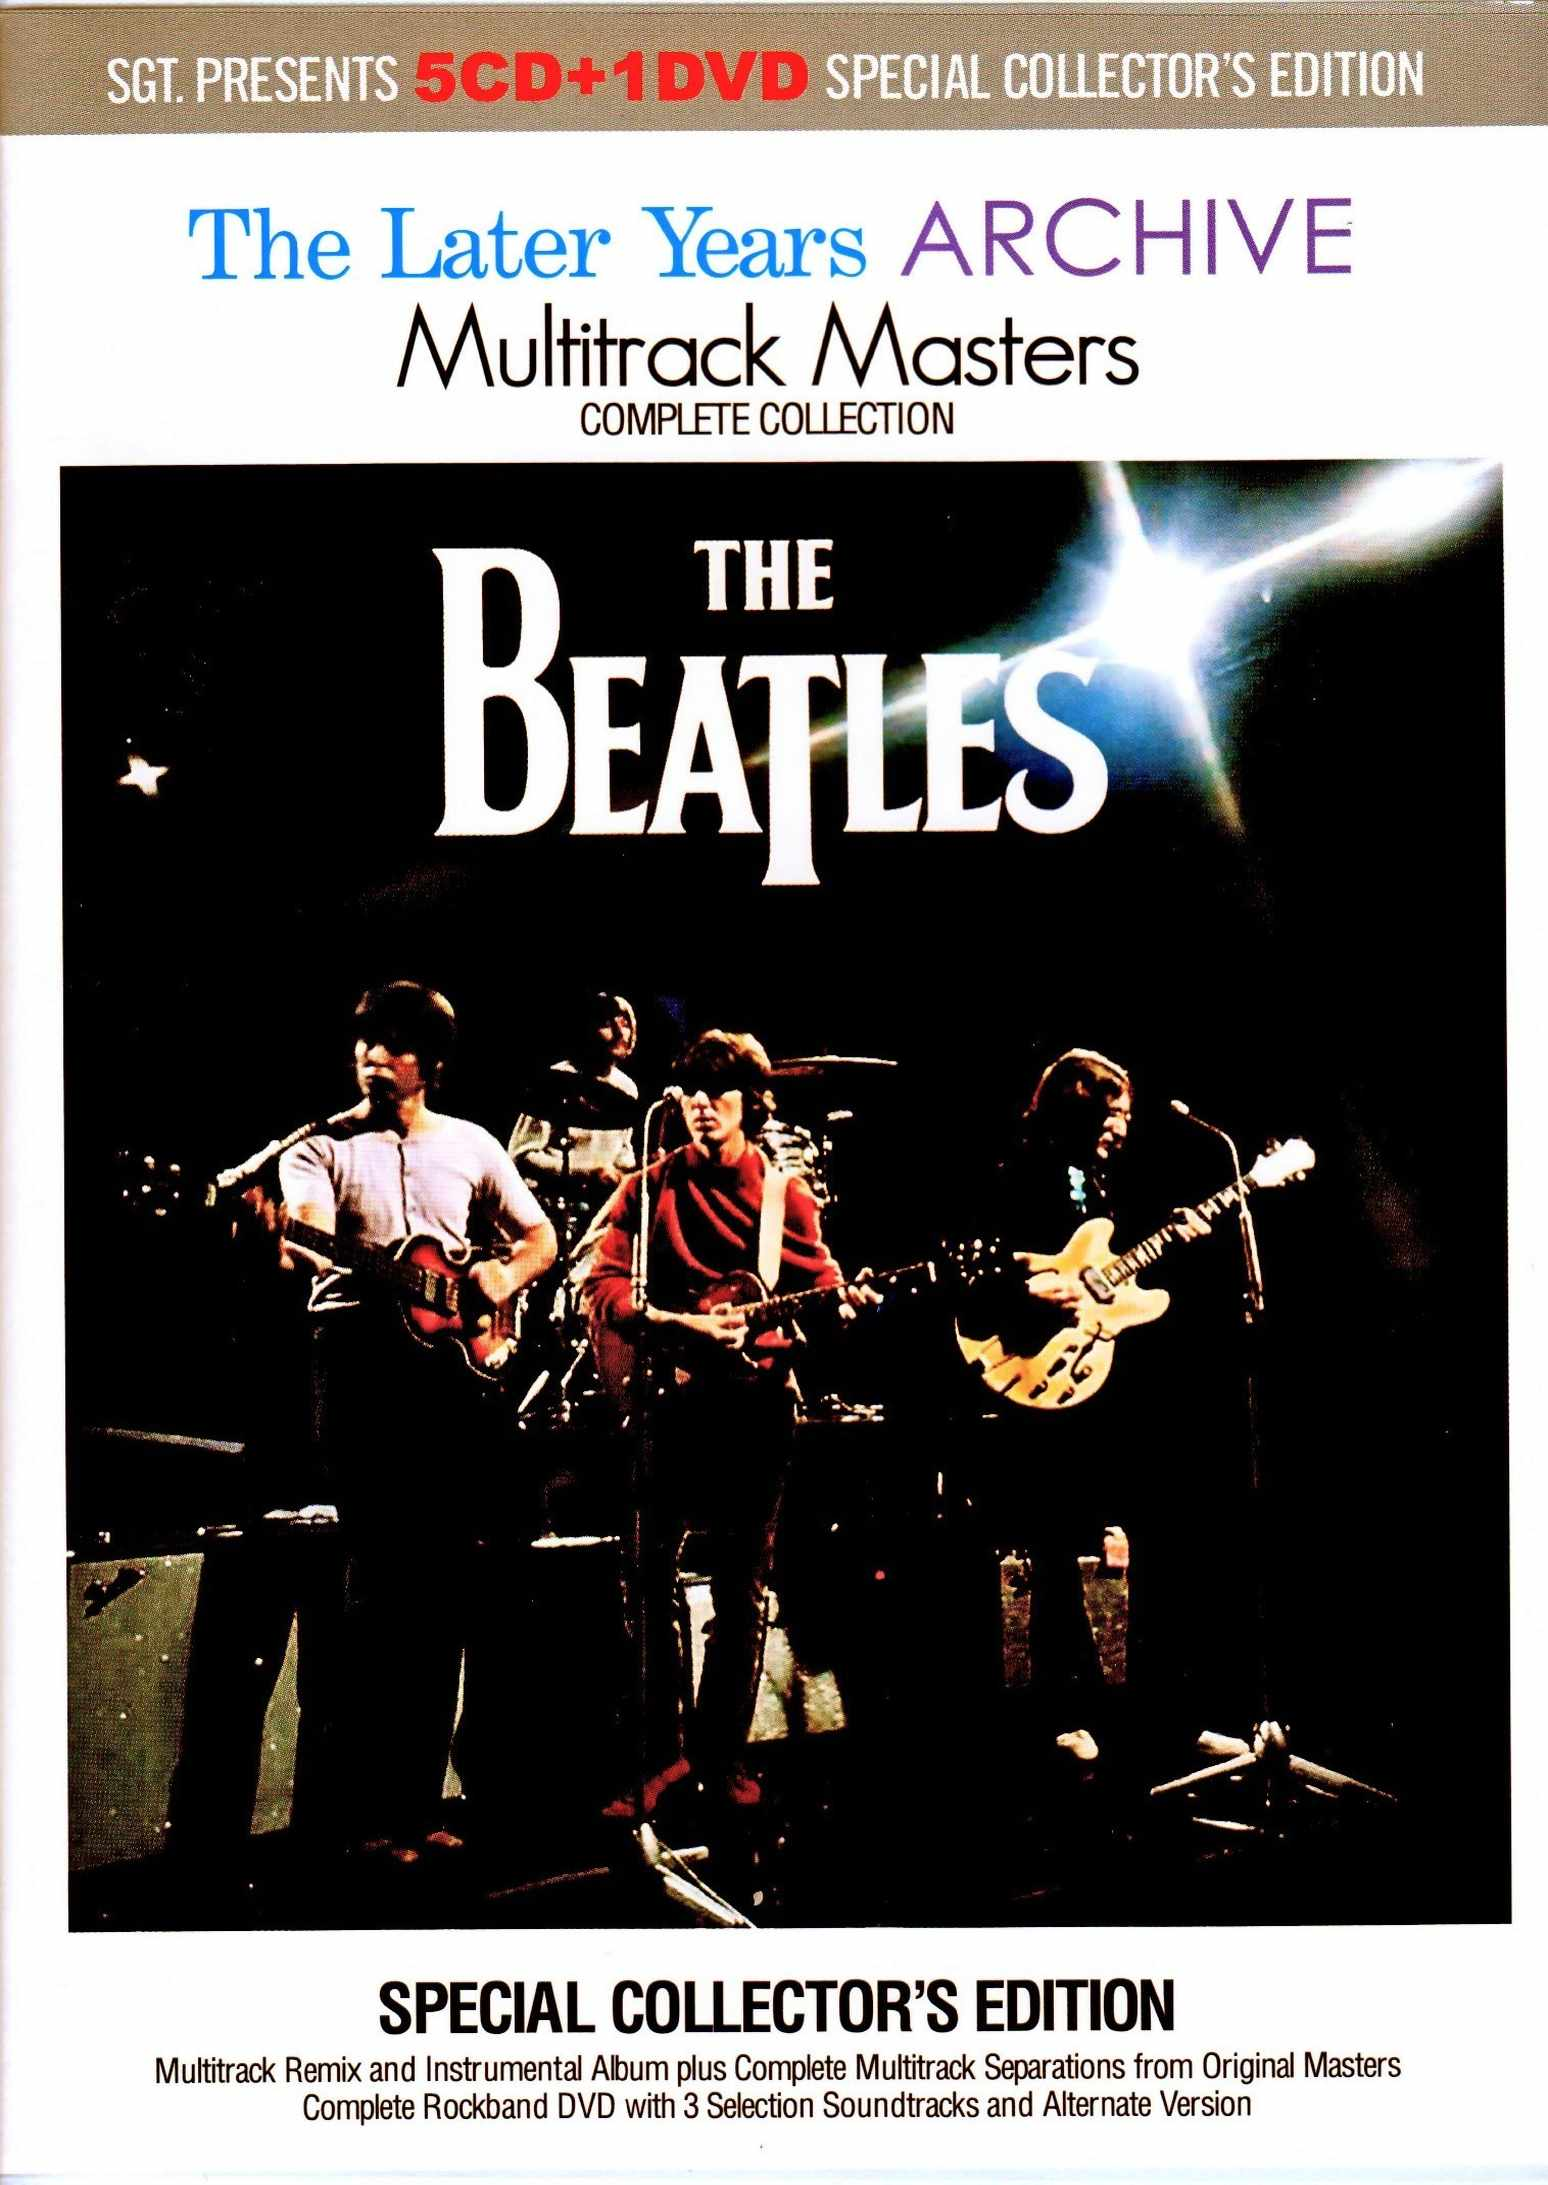 Beatles ビートルズ/The Later Years Archive Multitrack Masters Complete Collection